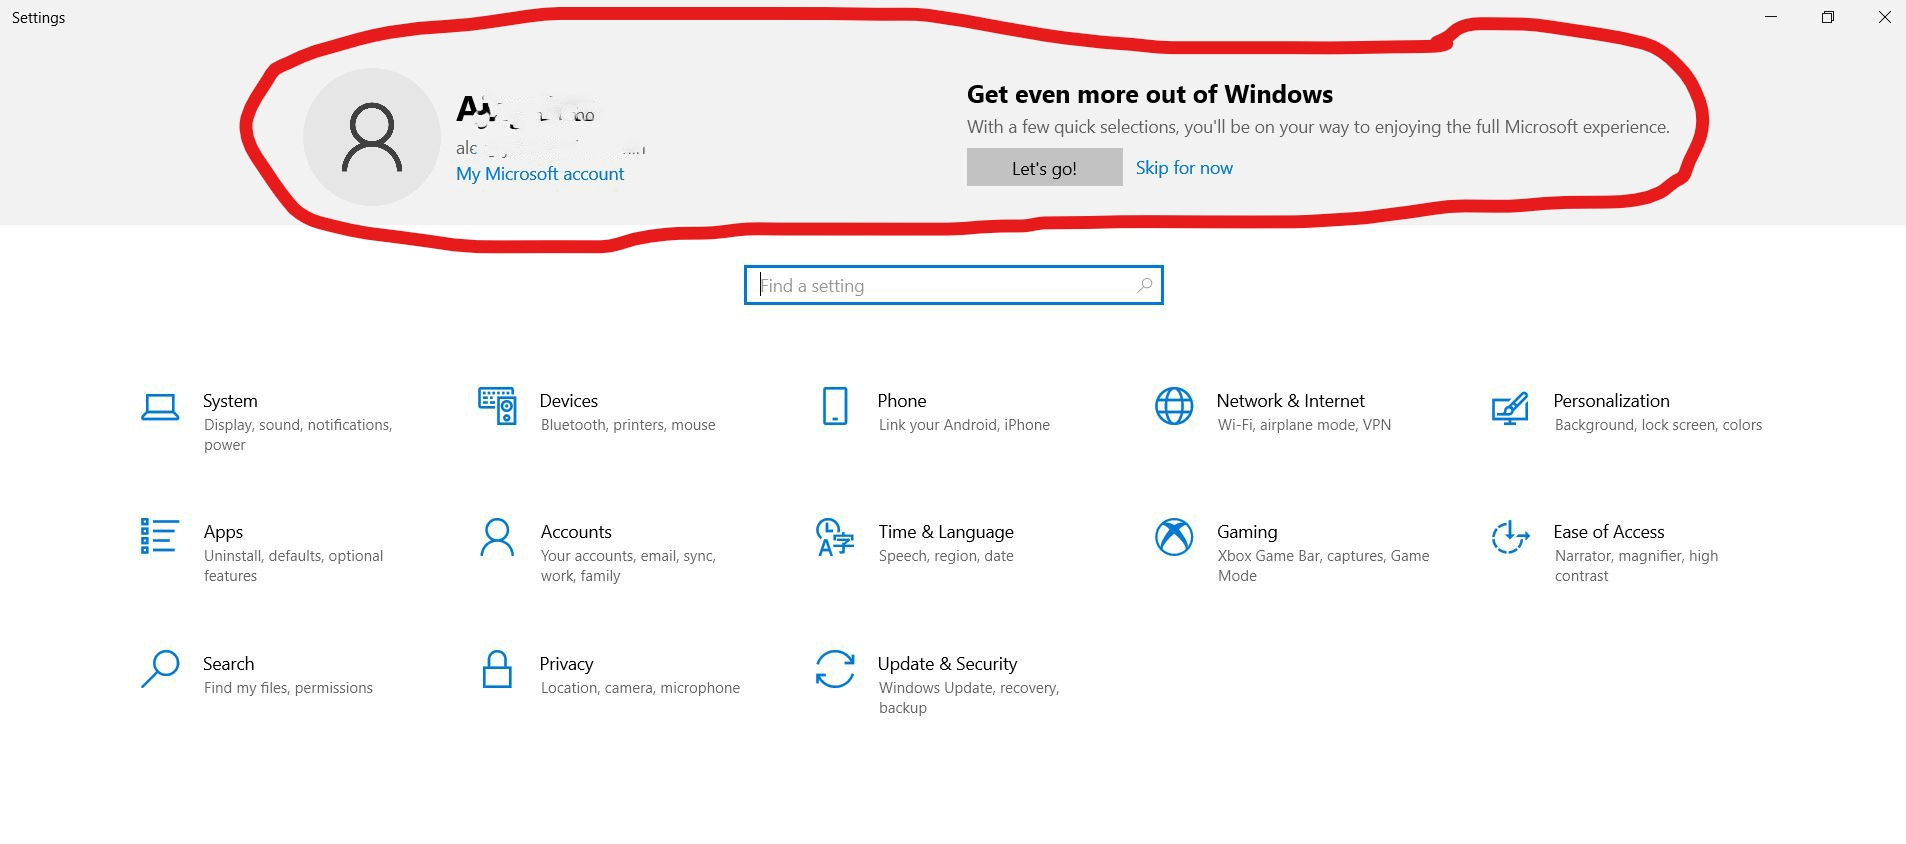 How to remove account details from the top of Windows 10 Settings 8ffcd54f-f2eb-481f-8630-78933b7ba71b?upload=true.jpg